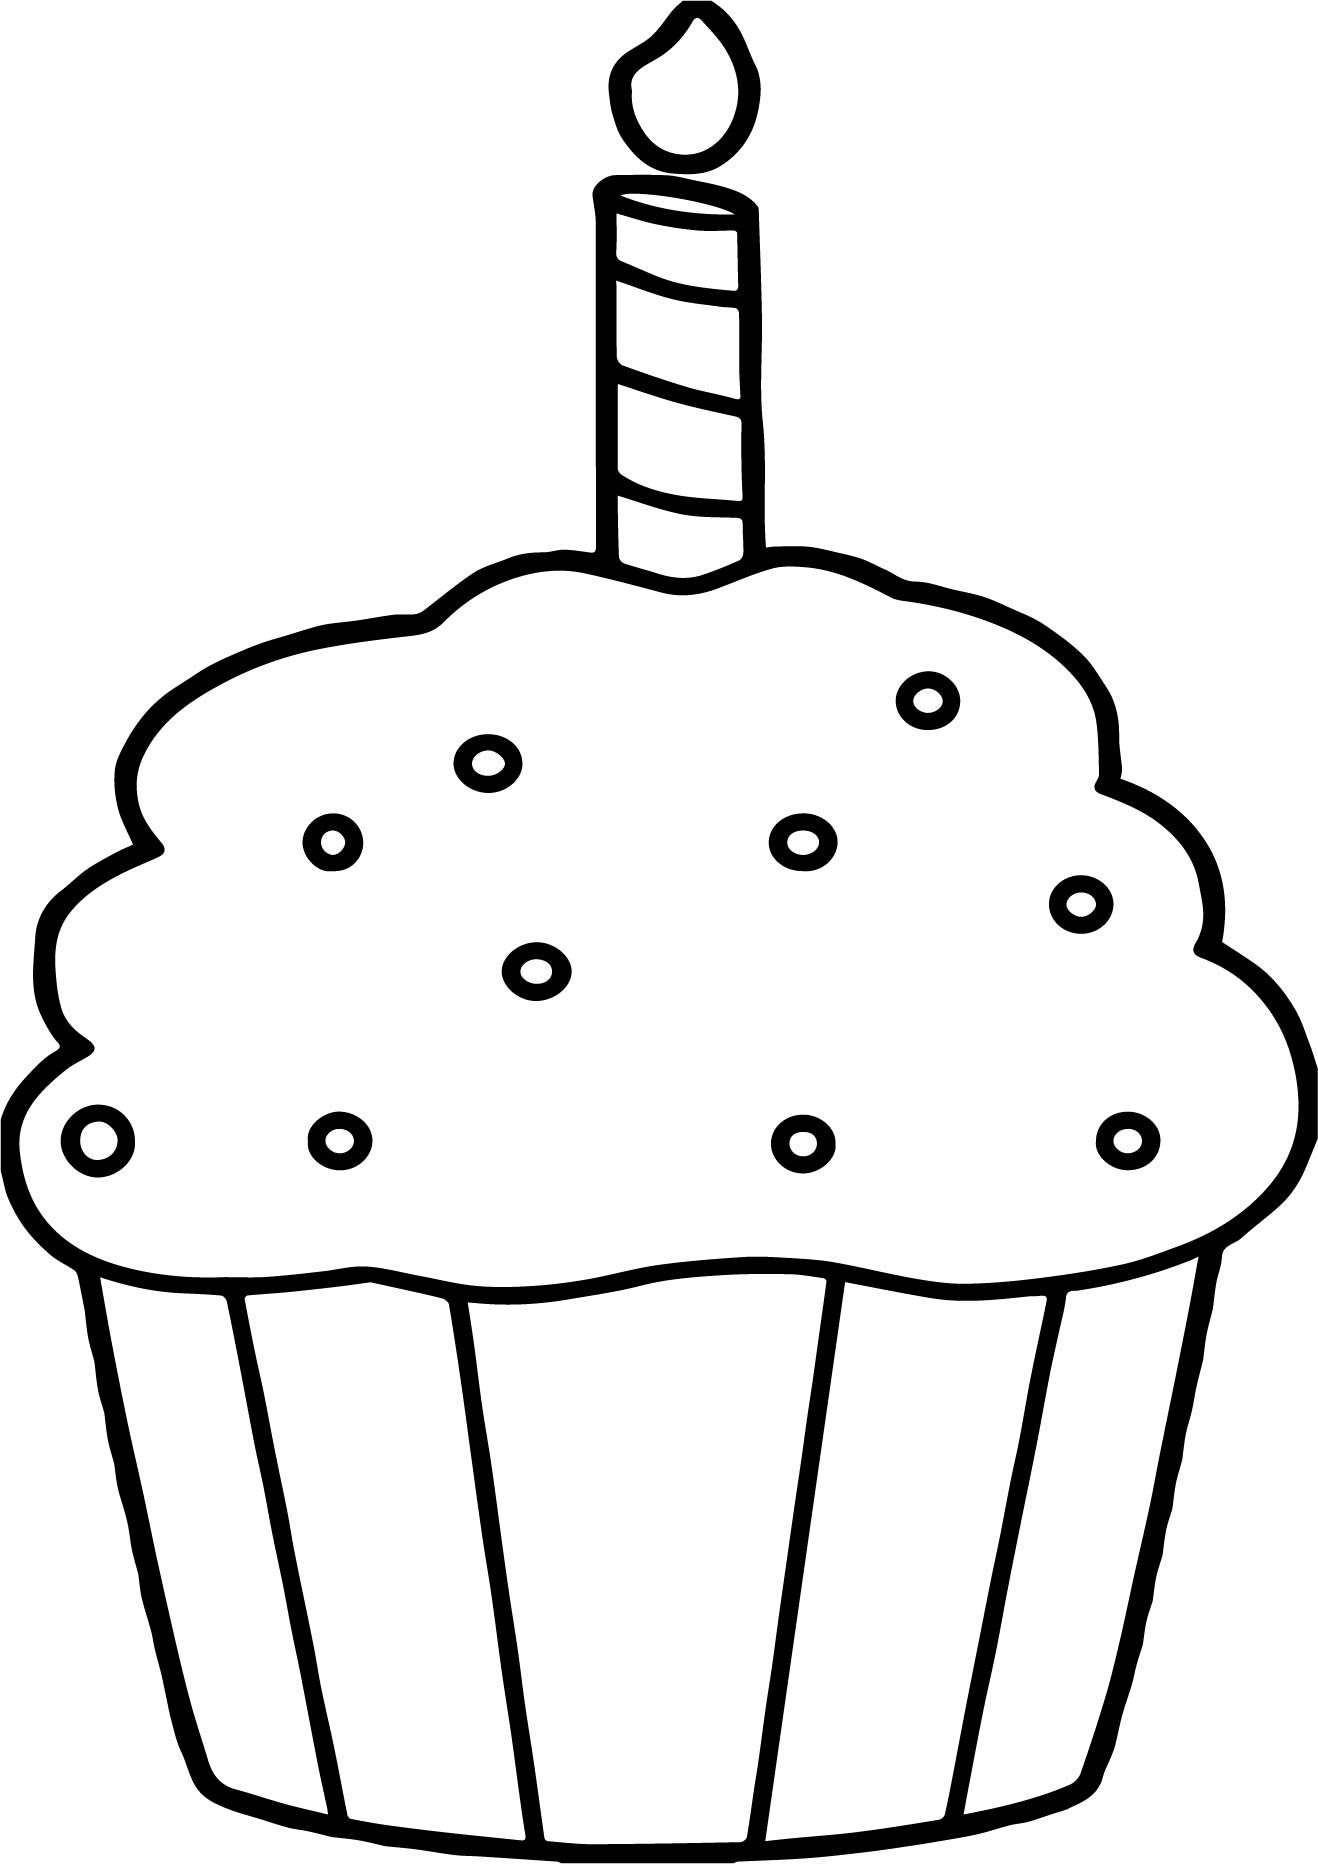 Cool Birthday Cupcake Coloring Page Cupcake Coloring Pages Birthday Coloring Pages Birthday Cupcake Images